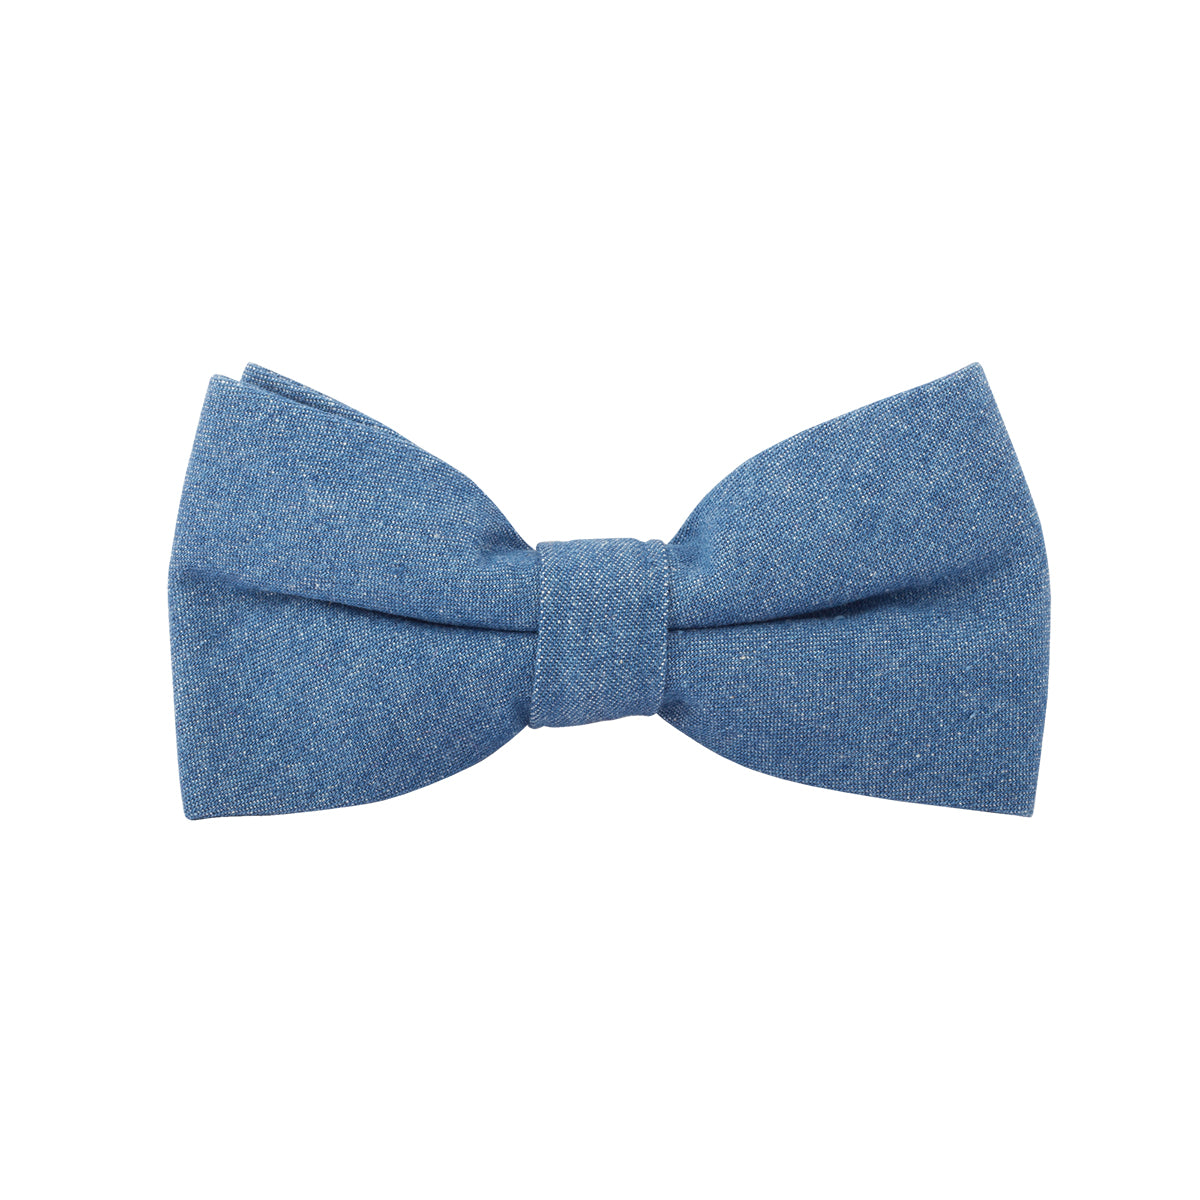 A last minute fix that lends an unmissable edge - this blue classic bow tie has an adjustable flexi strap that will fit just right.